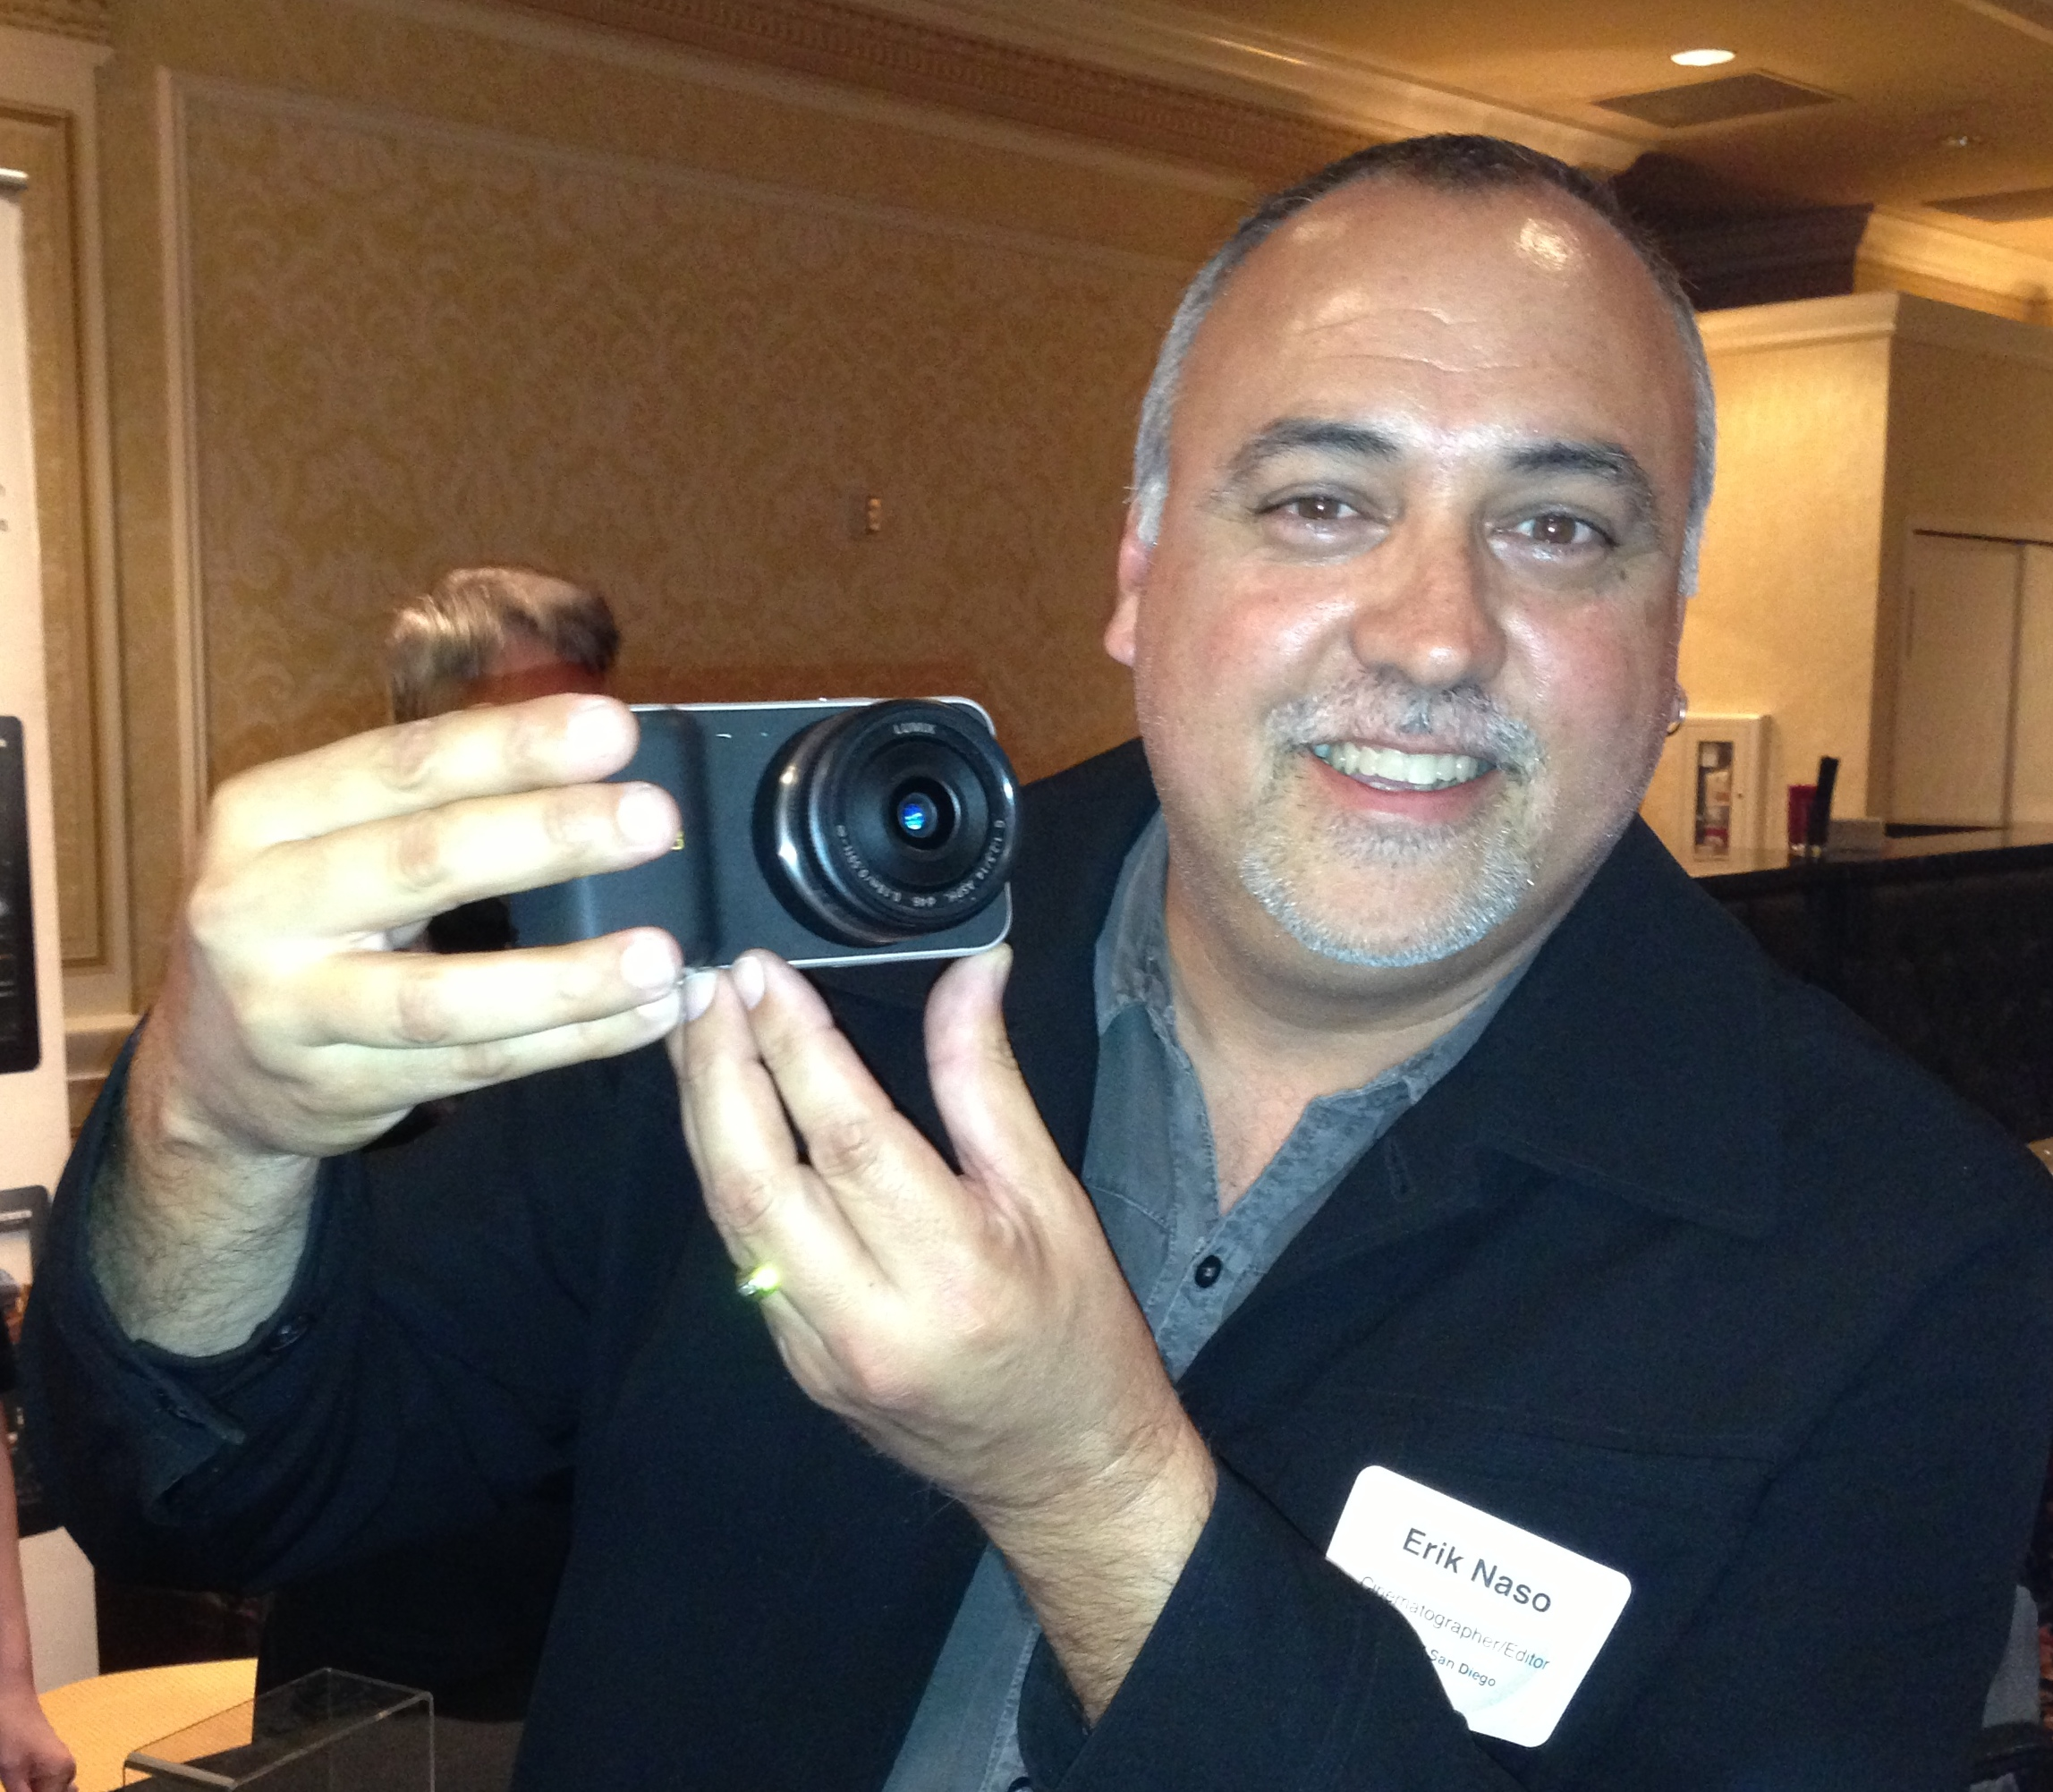 Me with the blackmagic pocket cinema camera at MediaMotion Ball